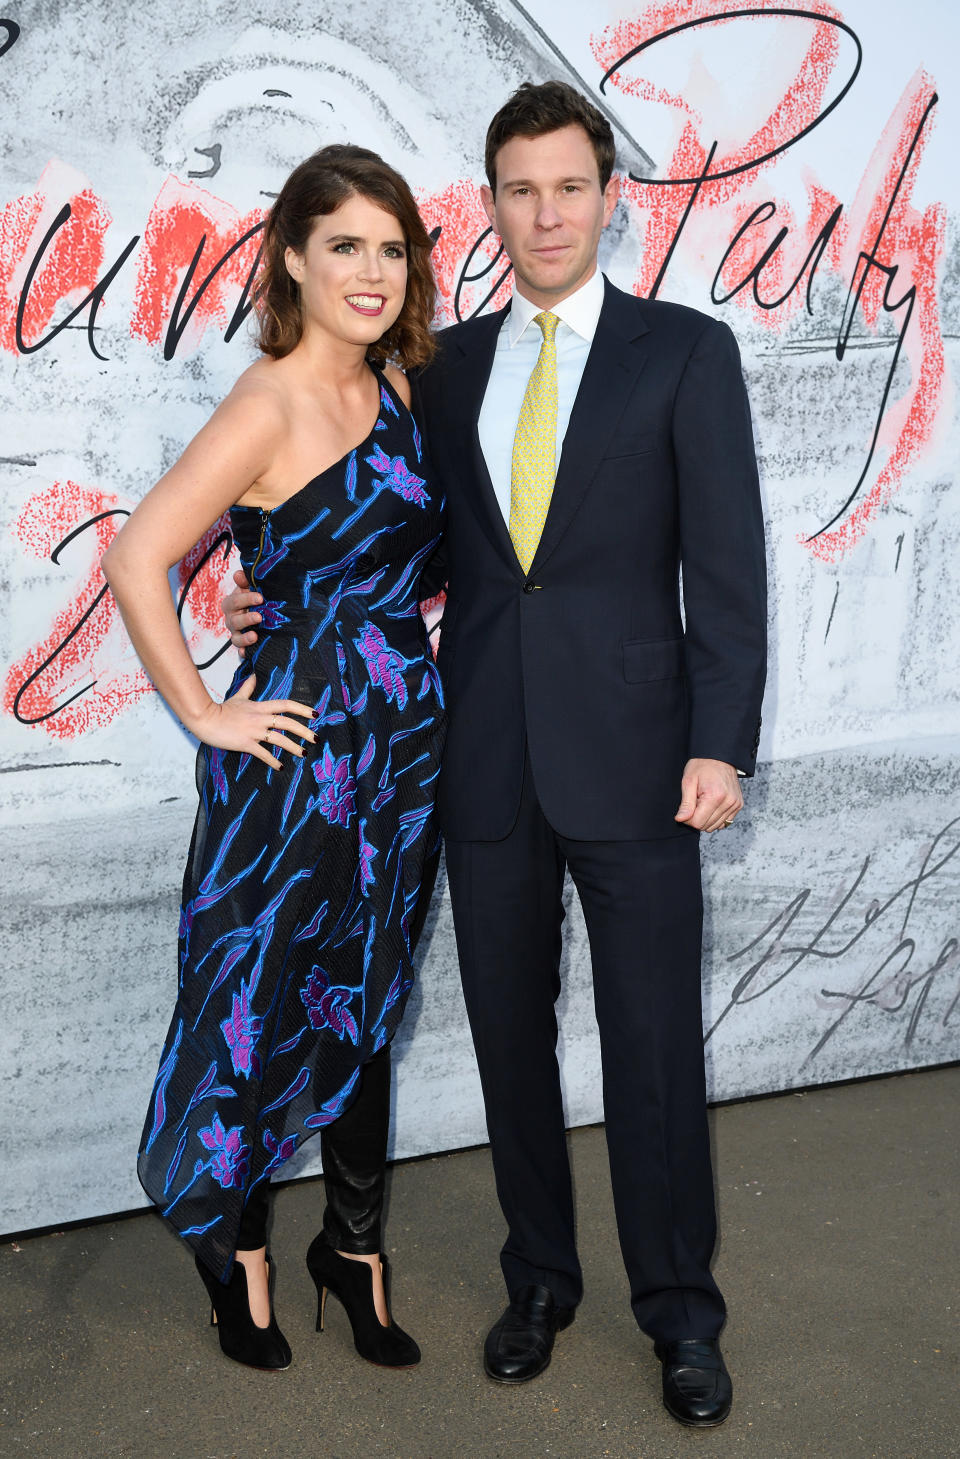 Princess Eugenie and future husband, Jack Brooksbank, attended the Serpentine Summer Party on 19 July [Photo: Getty]